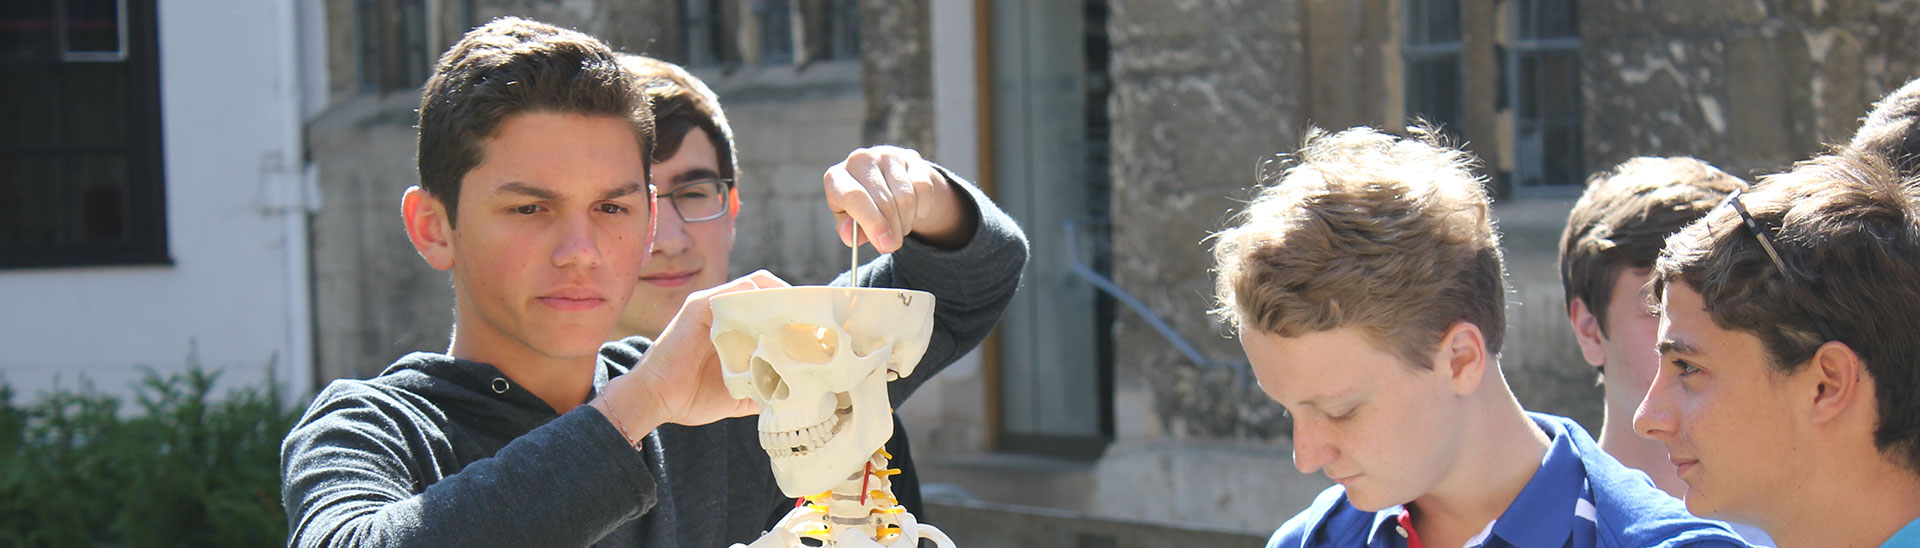 Oxbridge students studying medicine viewing human skeleton